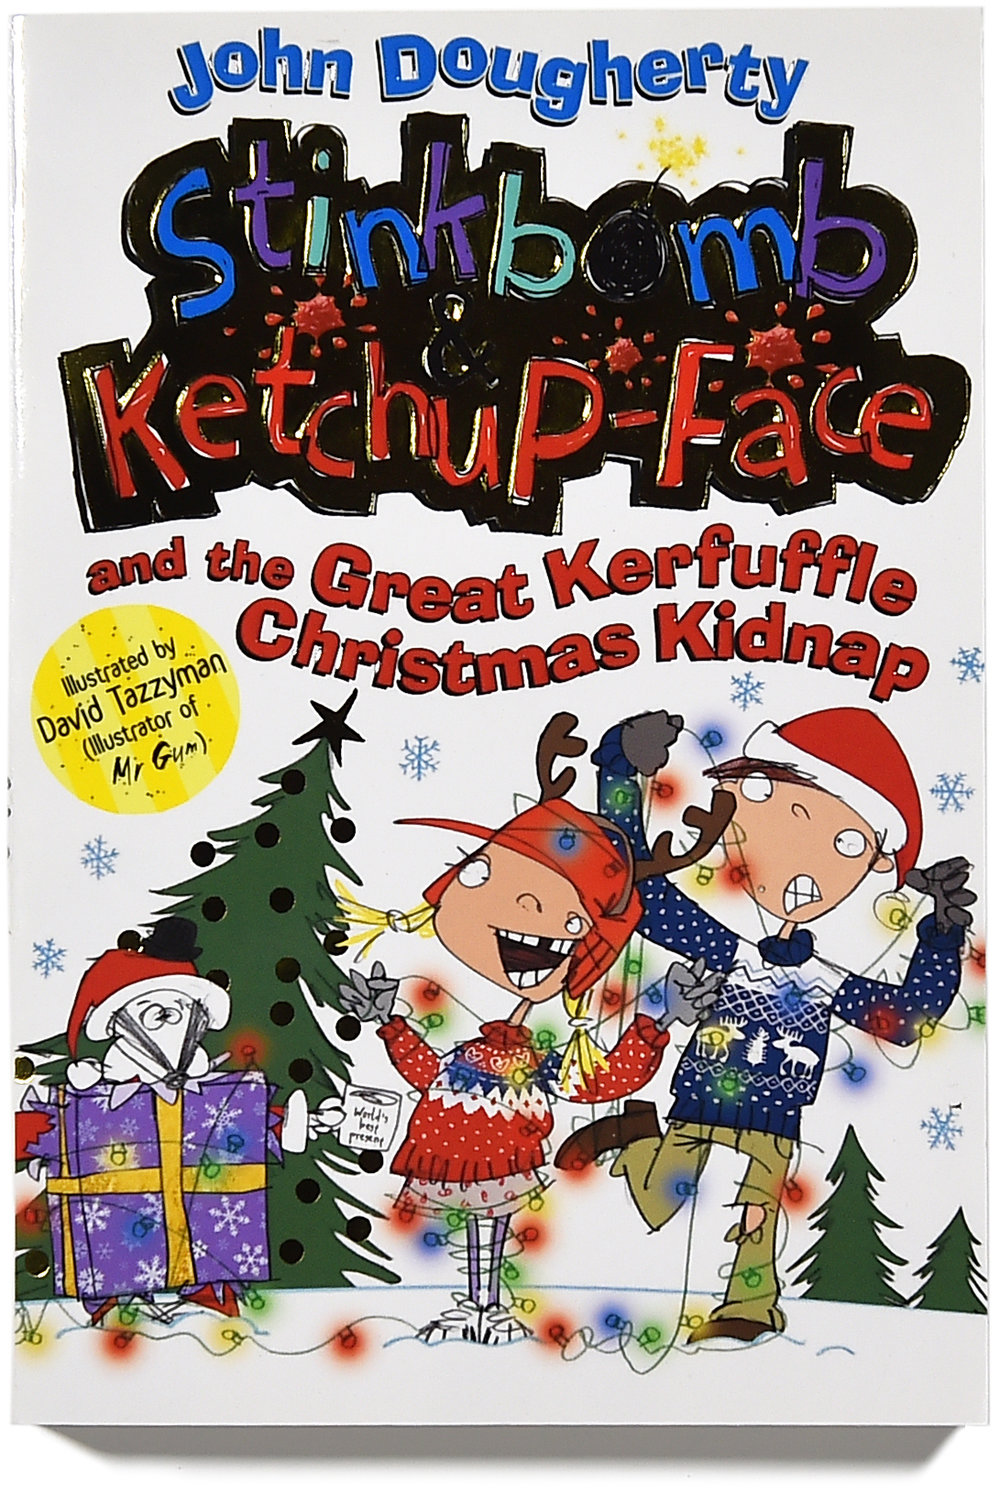 Stinkbomb & Ketchup-Face and the Great Kerfuffle Christmas Kidnap cover.FIN.jpg